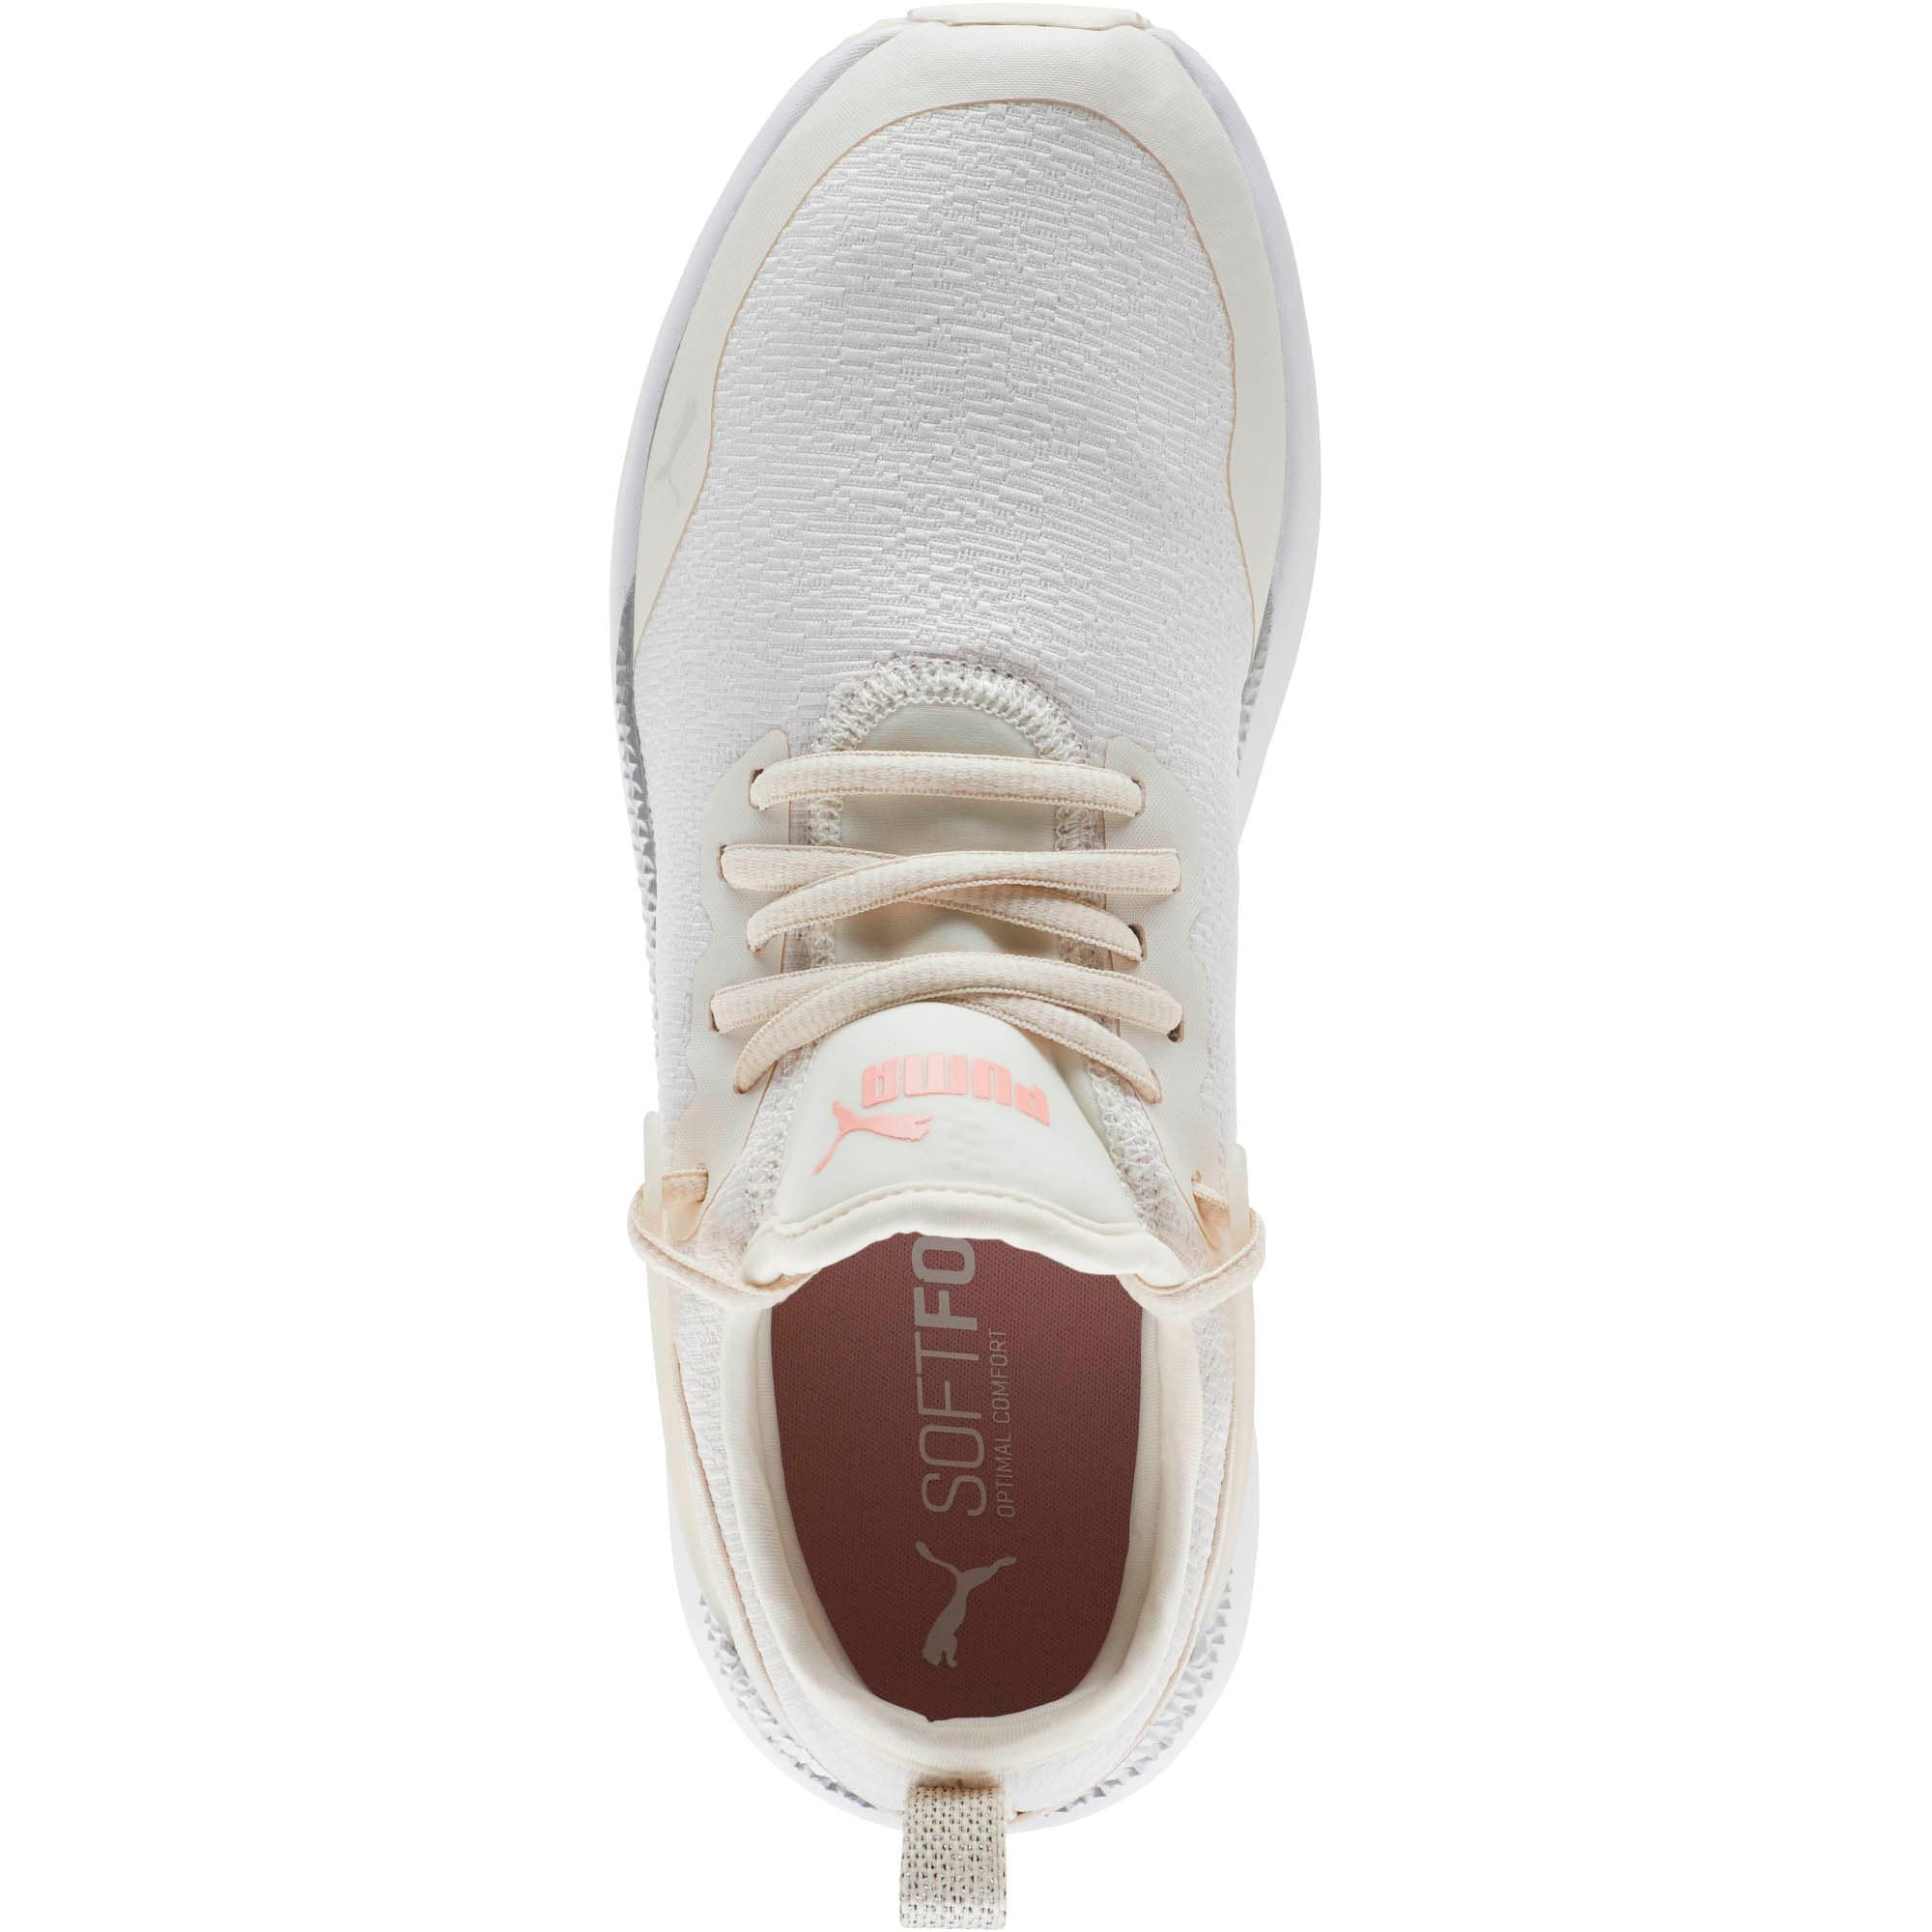 Thumbnail 5 of Pacer Next Cage Glitter Women's Sneakers, Pastel Parchment-Bridal Rose, medium